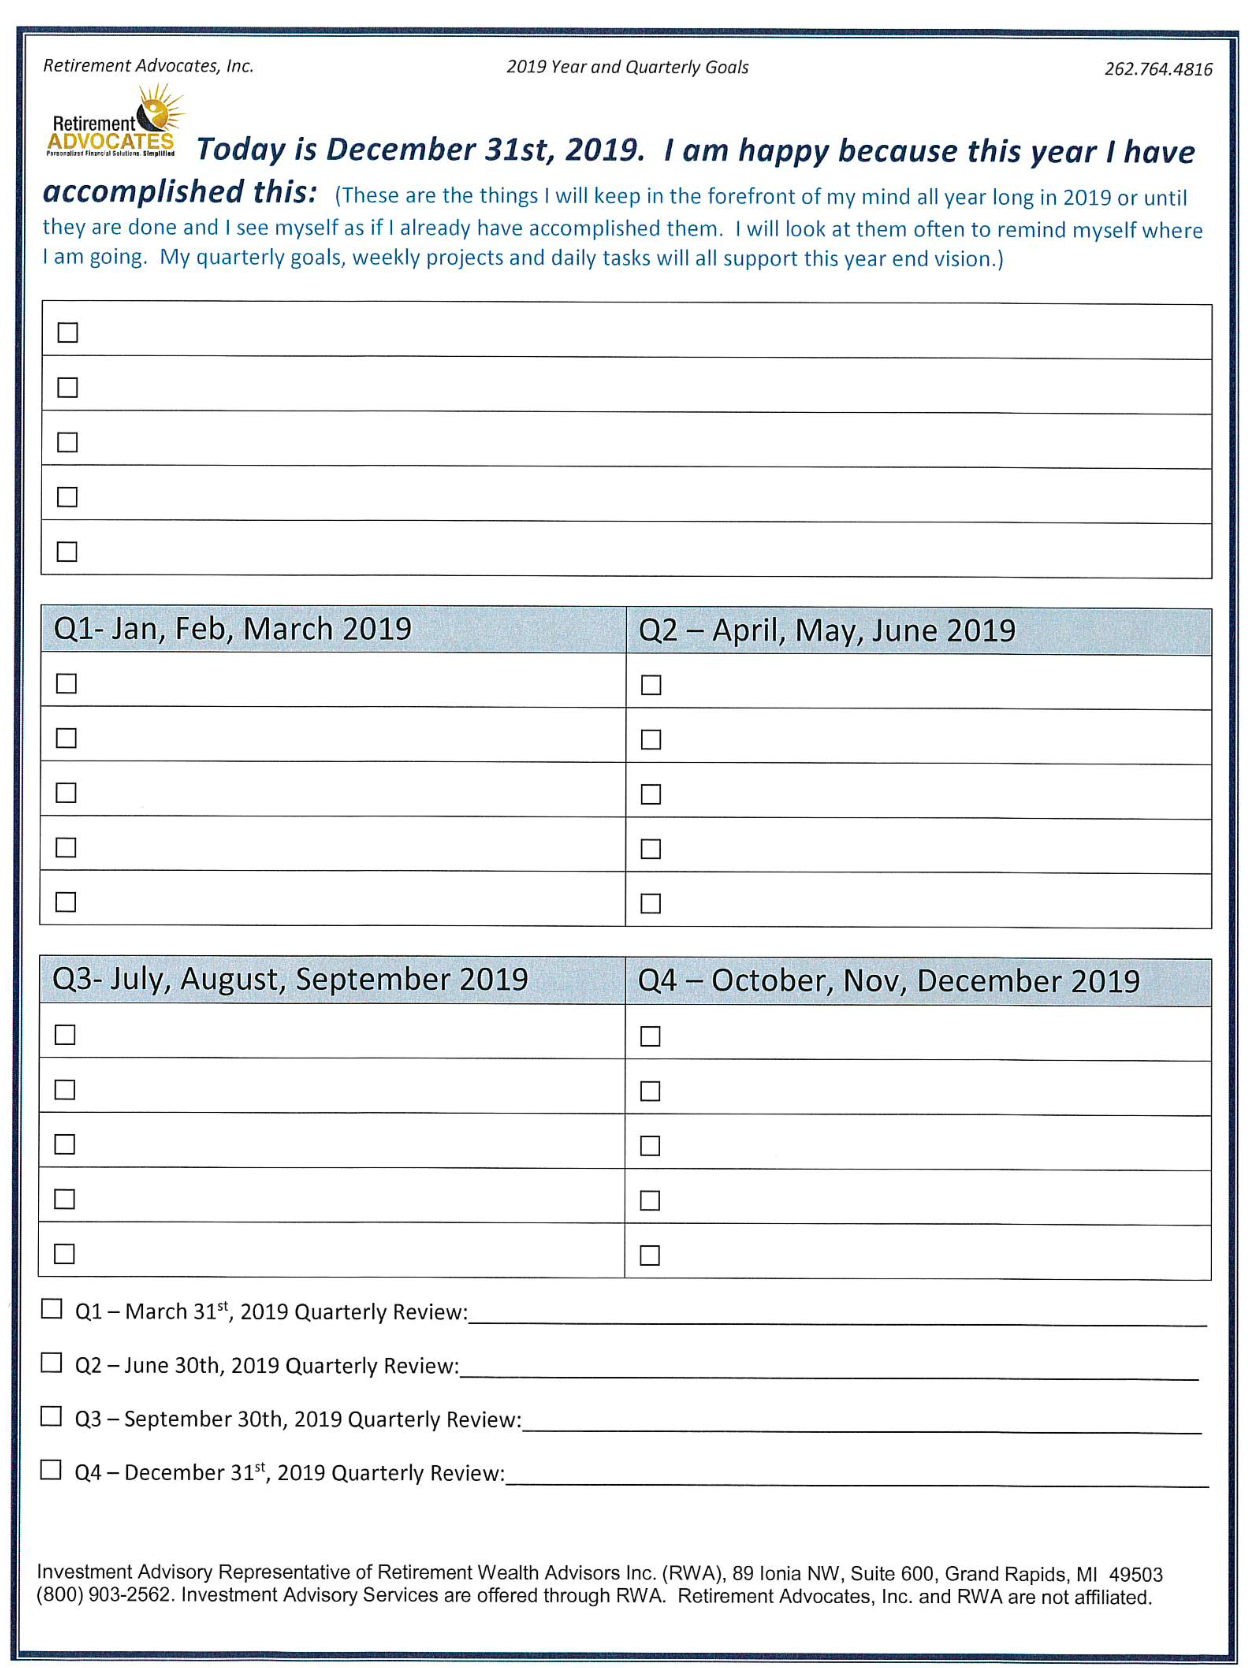 2019-Goals-Worksheet